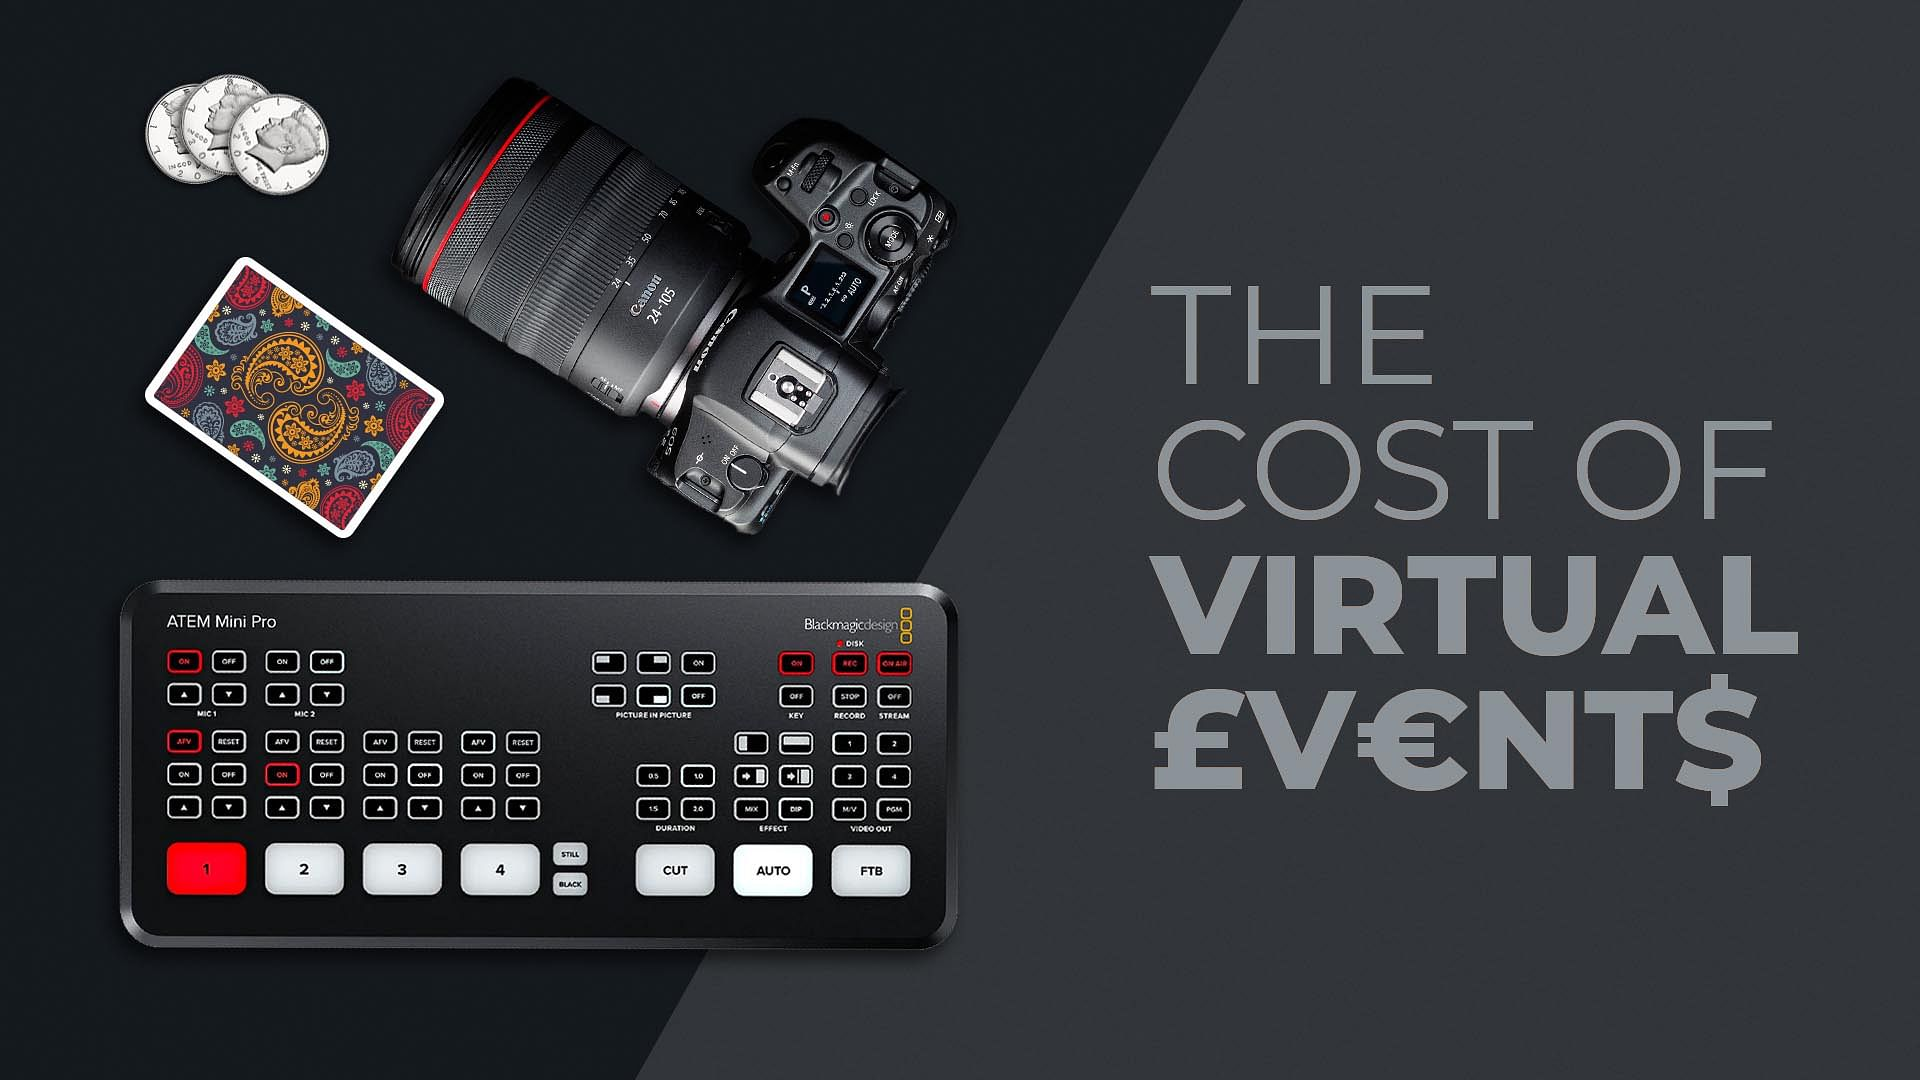 The Cost of Virtual Events